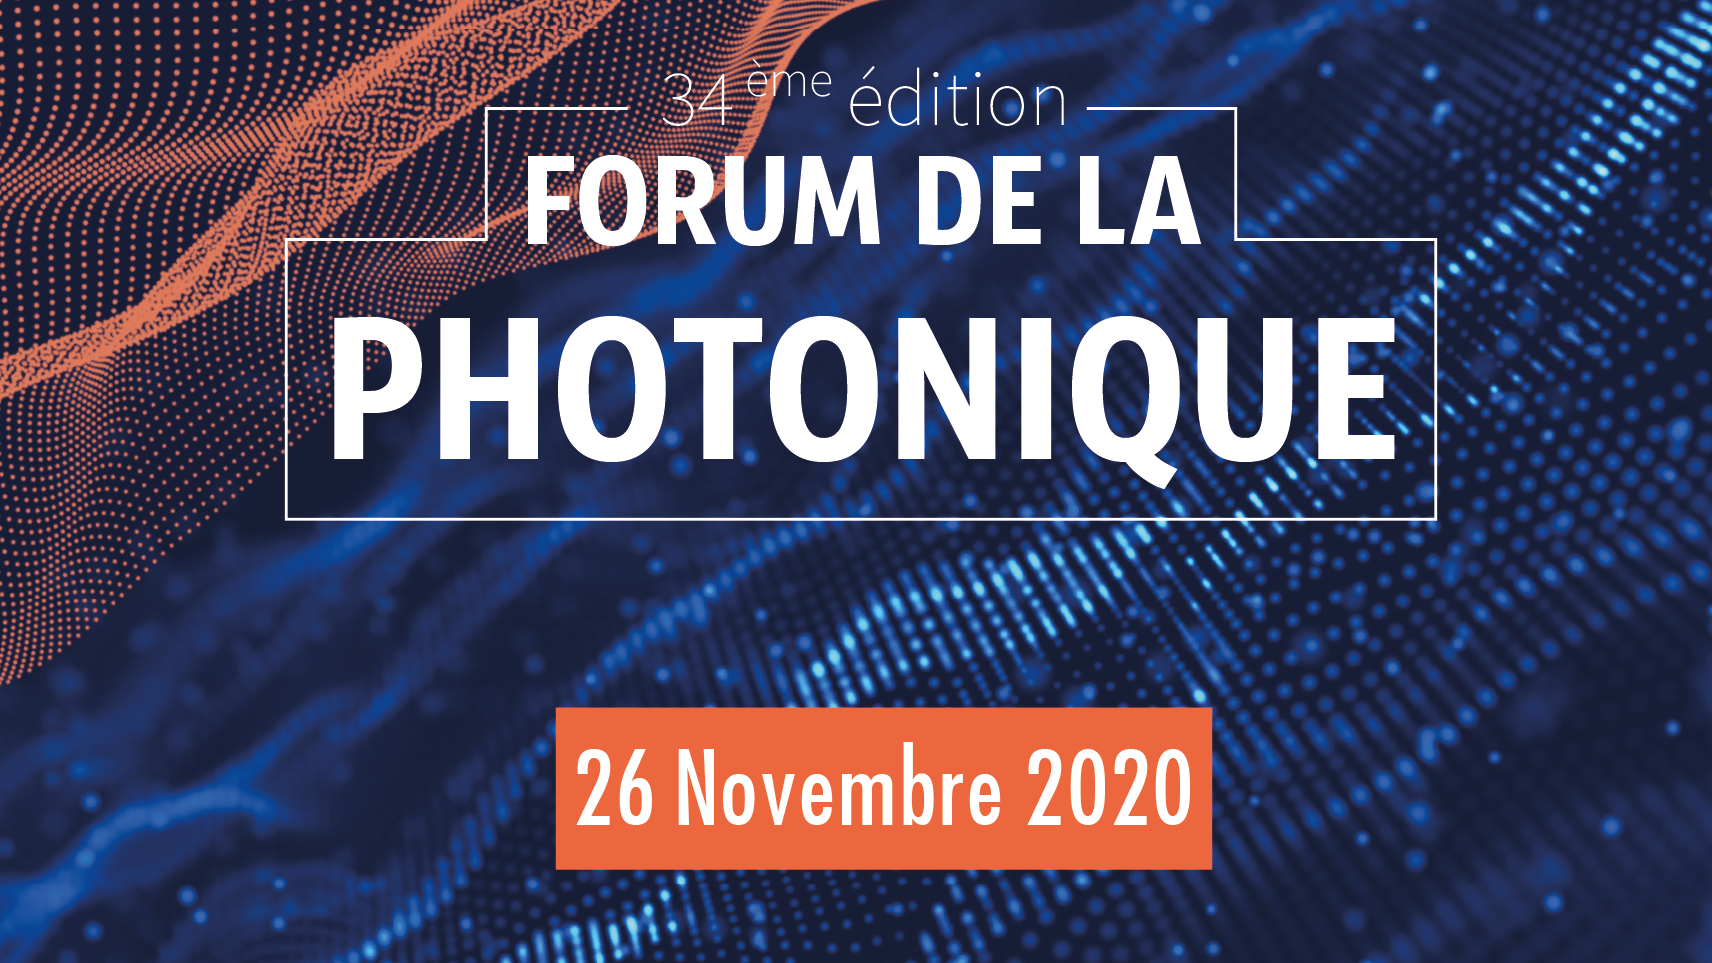 E-Forum de la photonique 2020